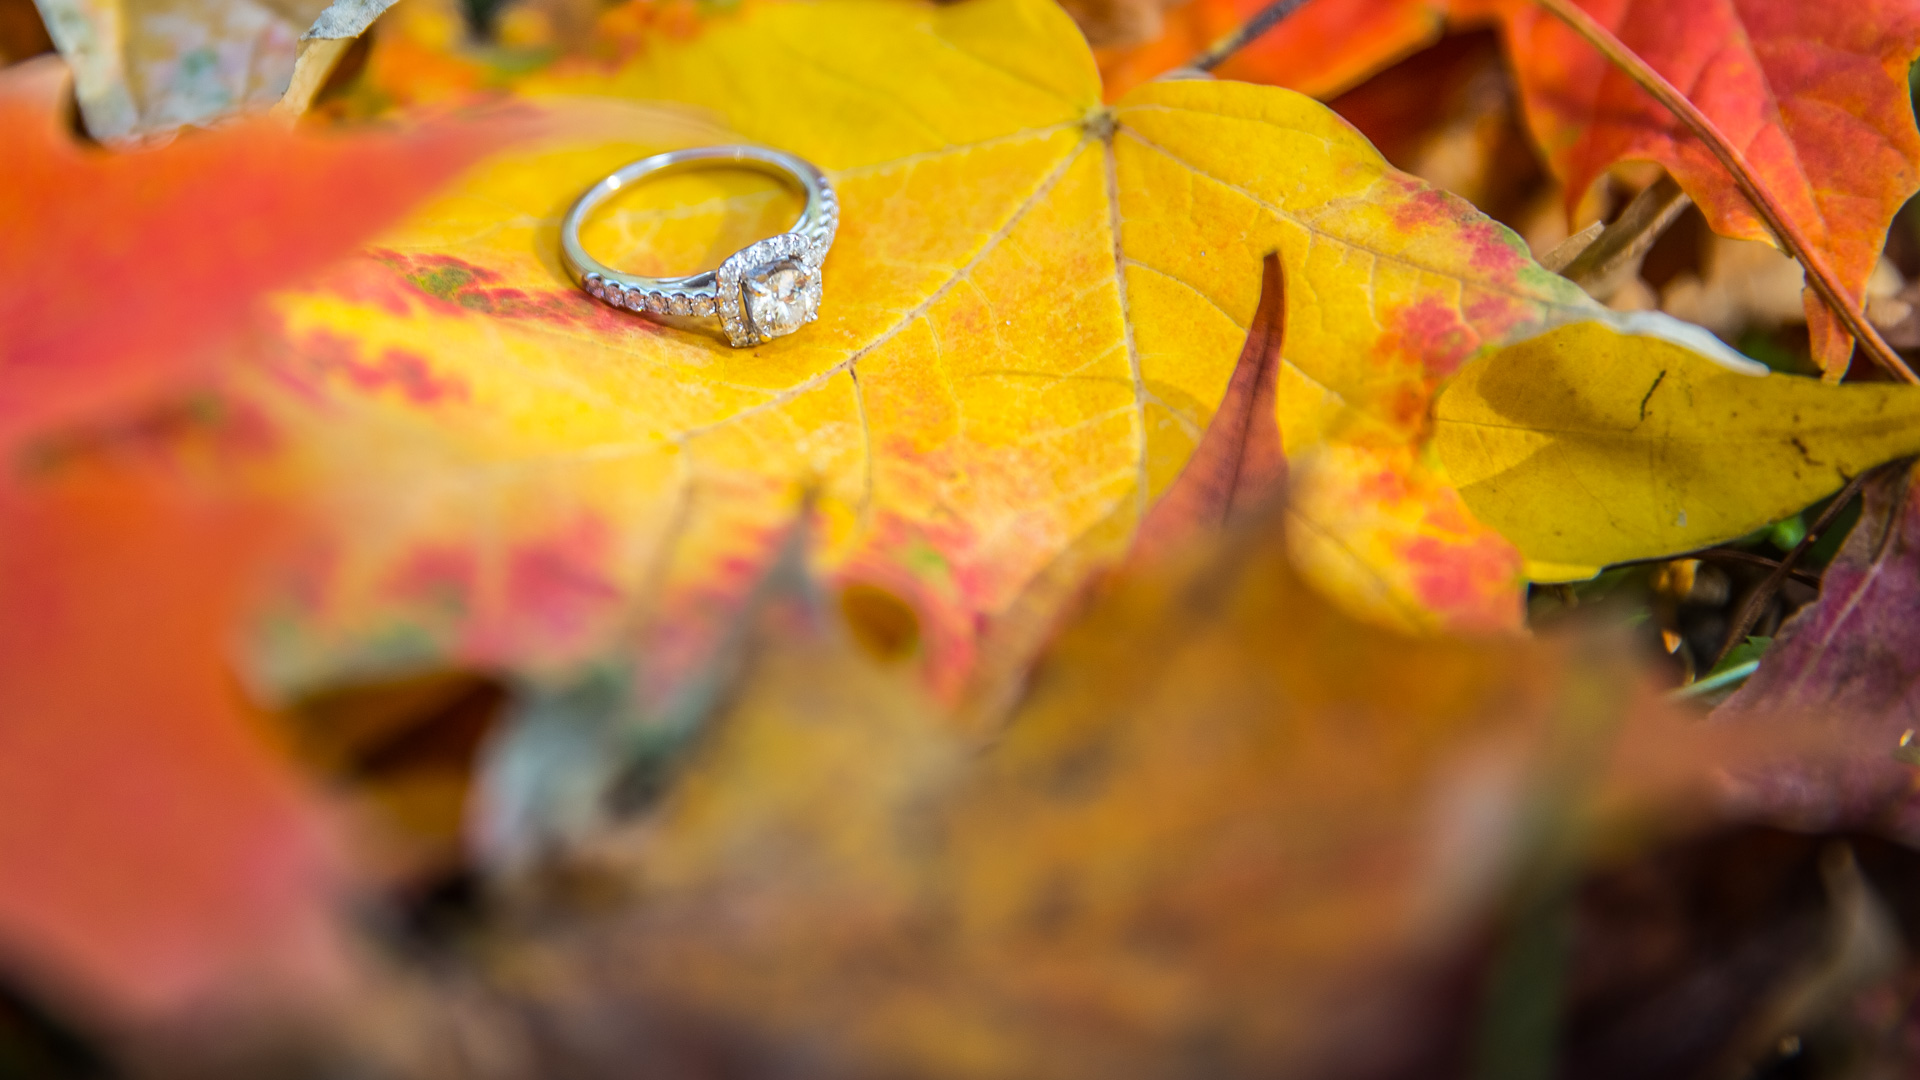 epic_sky_pictures_bridal_ring_photography_accessories_wedding_weddingday_details_shiny_diamond_wedding_putaringonit_bride_just_married